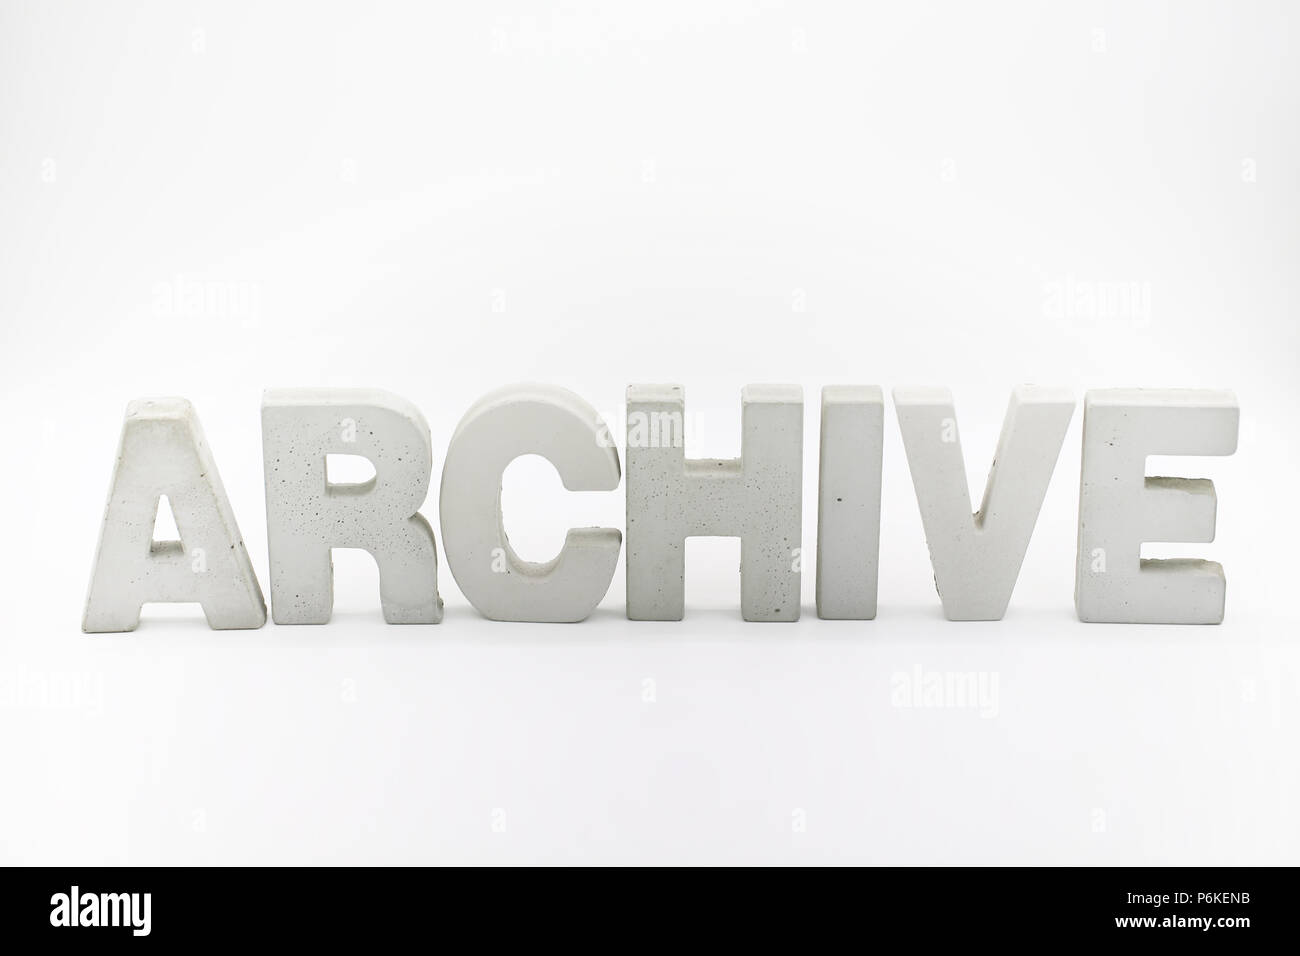 archive the word block - Stock Image